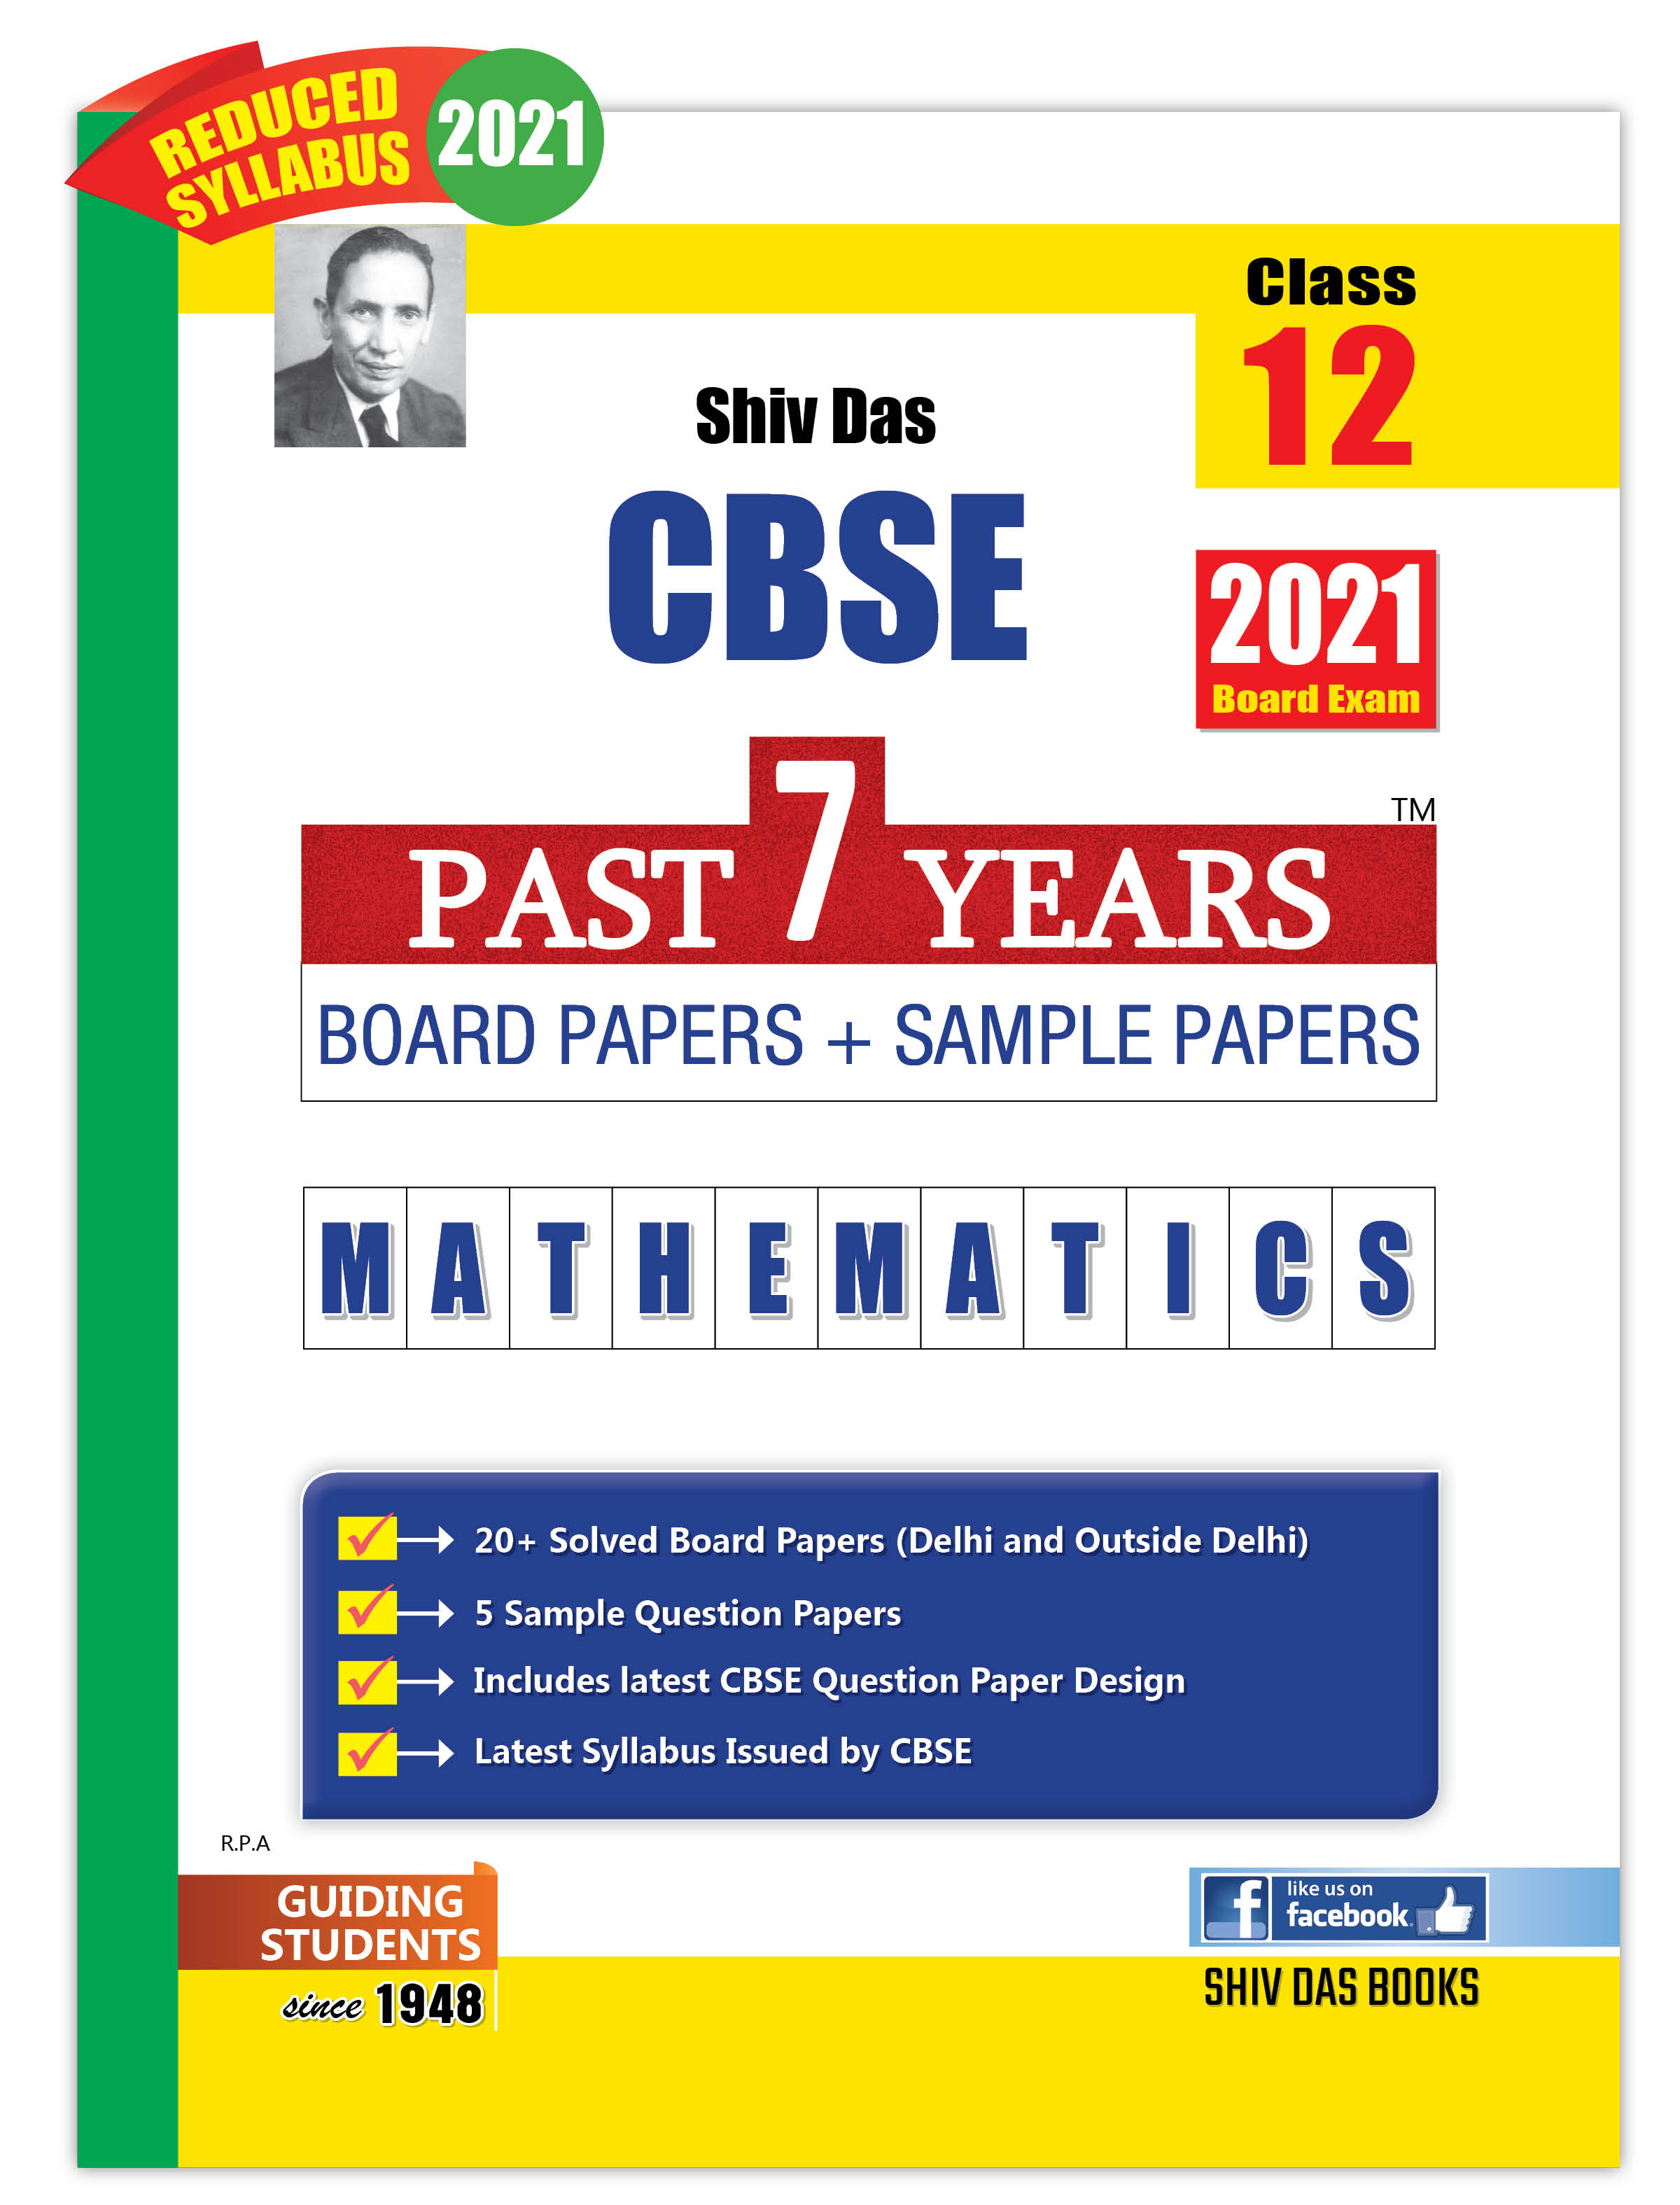 CBSE Past 7 Years Solved Board Papers and Sample Papers for Class 12 Mathematics By SHIVDAS (2021 Board Exam Edition)